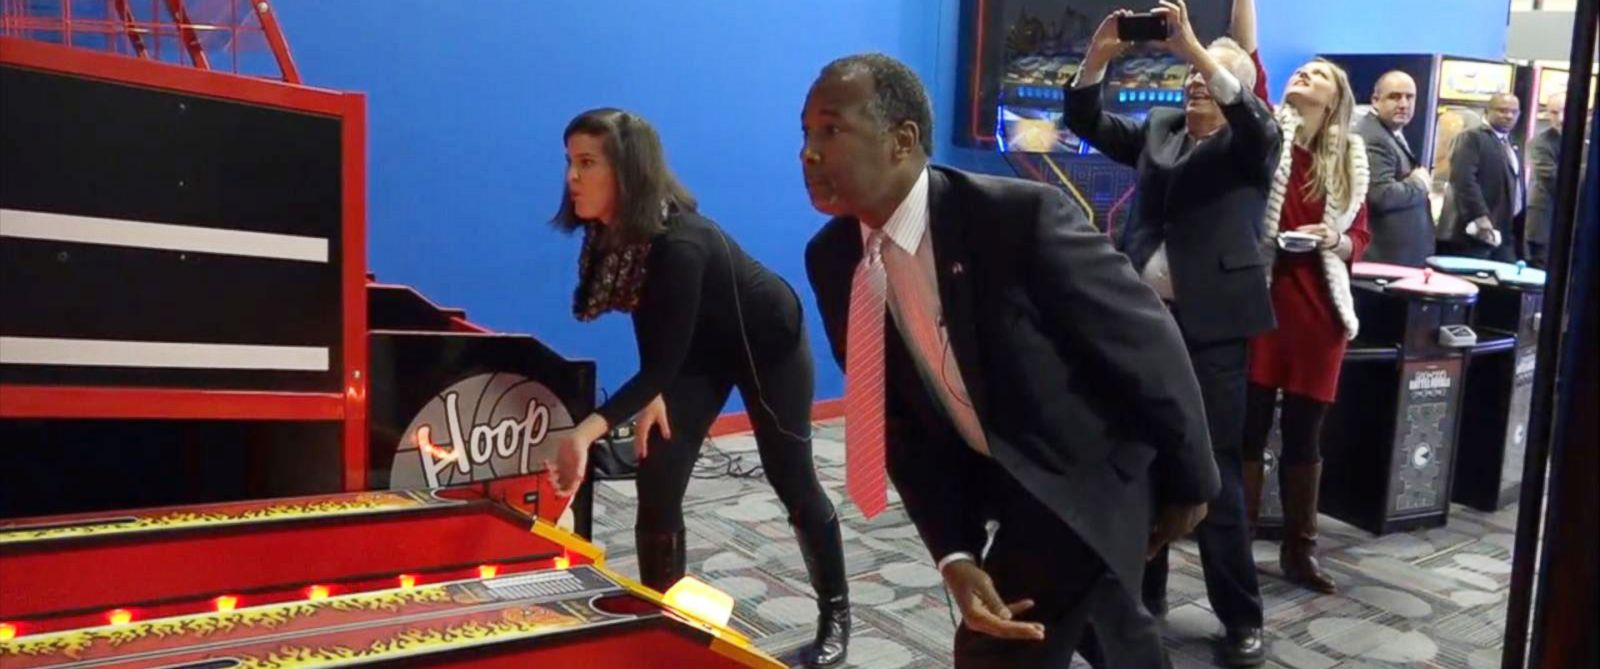 PHOTO: Republican presidential candidate Ben Carson plays skee ball with ABC News reporter Katherine Faulders at Fort Frenzy, an arcade in Fort Dodge, Iowa, Jan. 11, 2016.